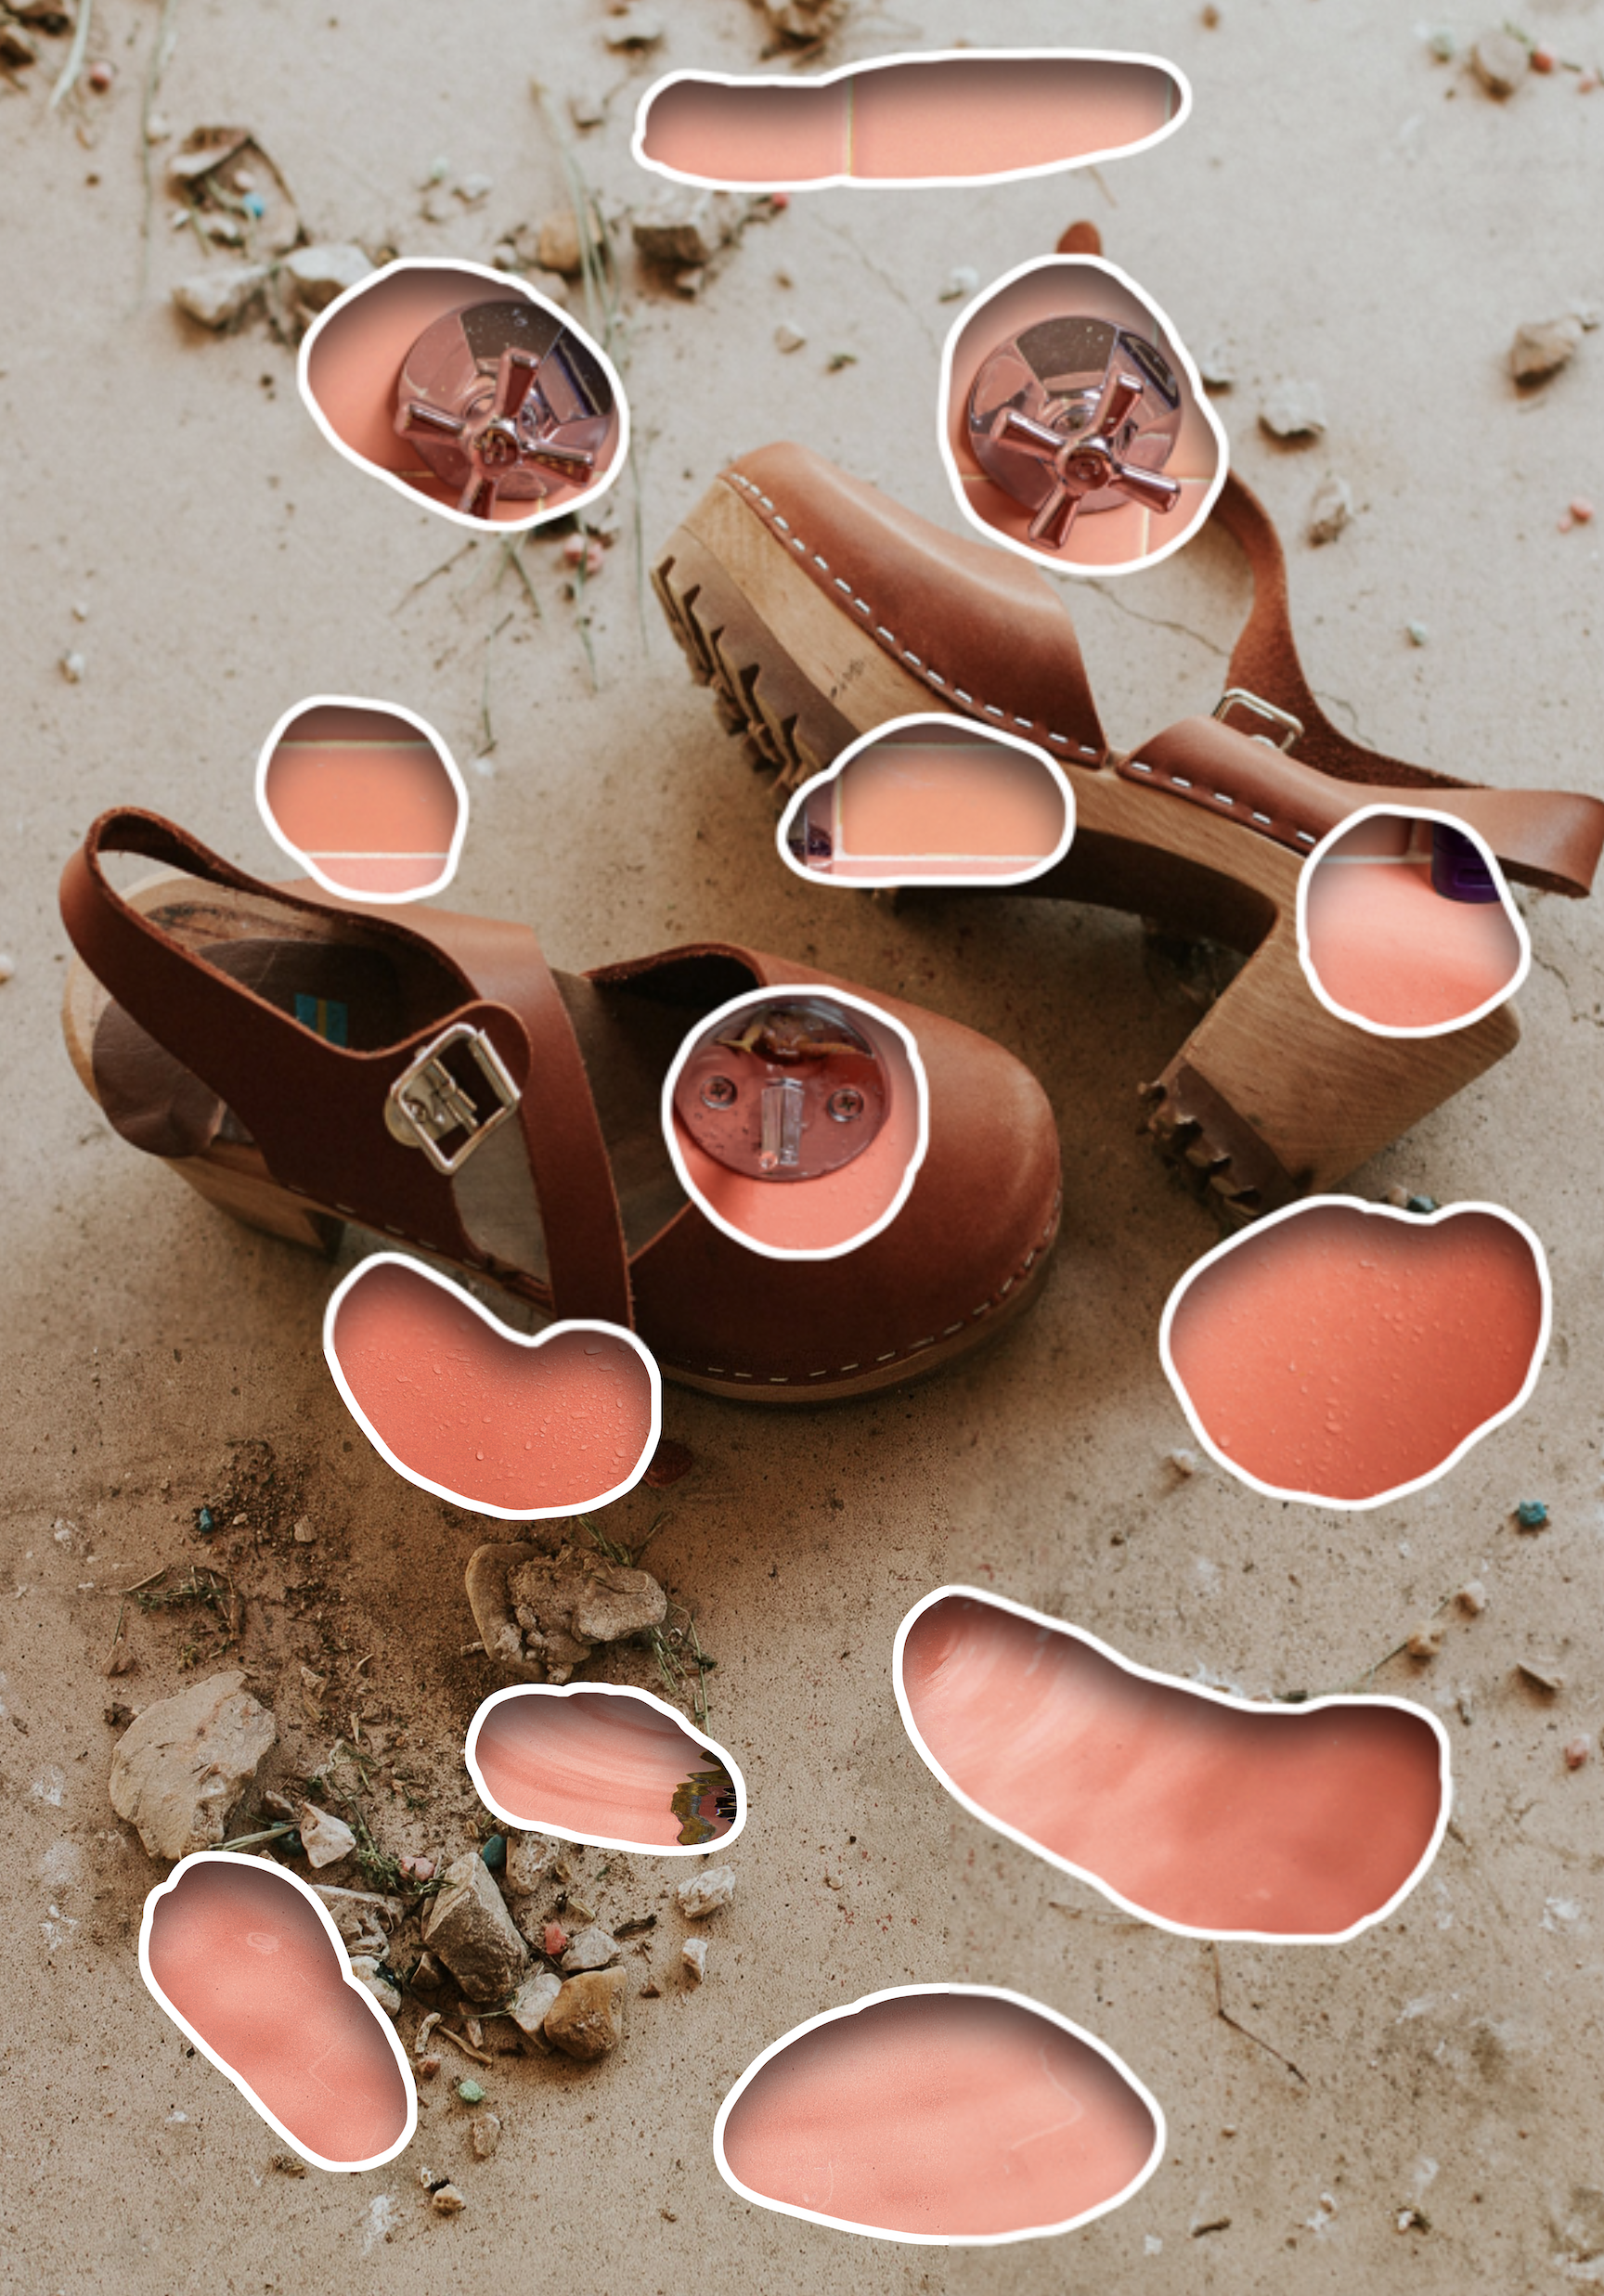 Untitled. (dirt clogs) 2021 Archival print mounted to Dibond.